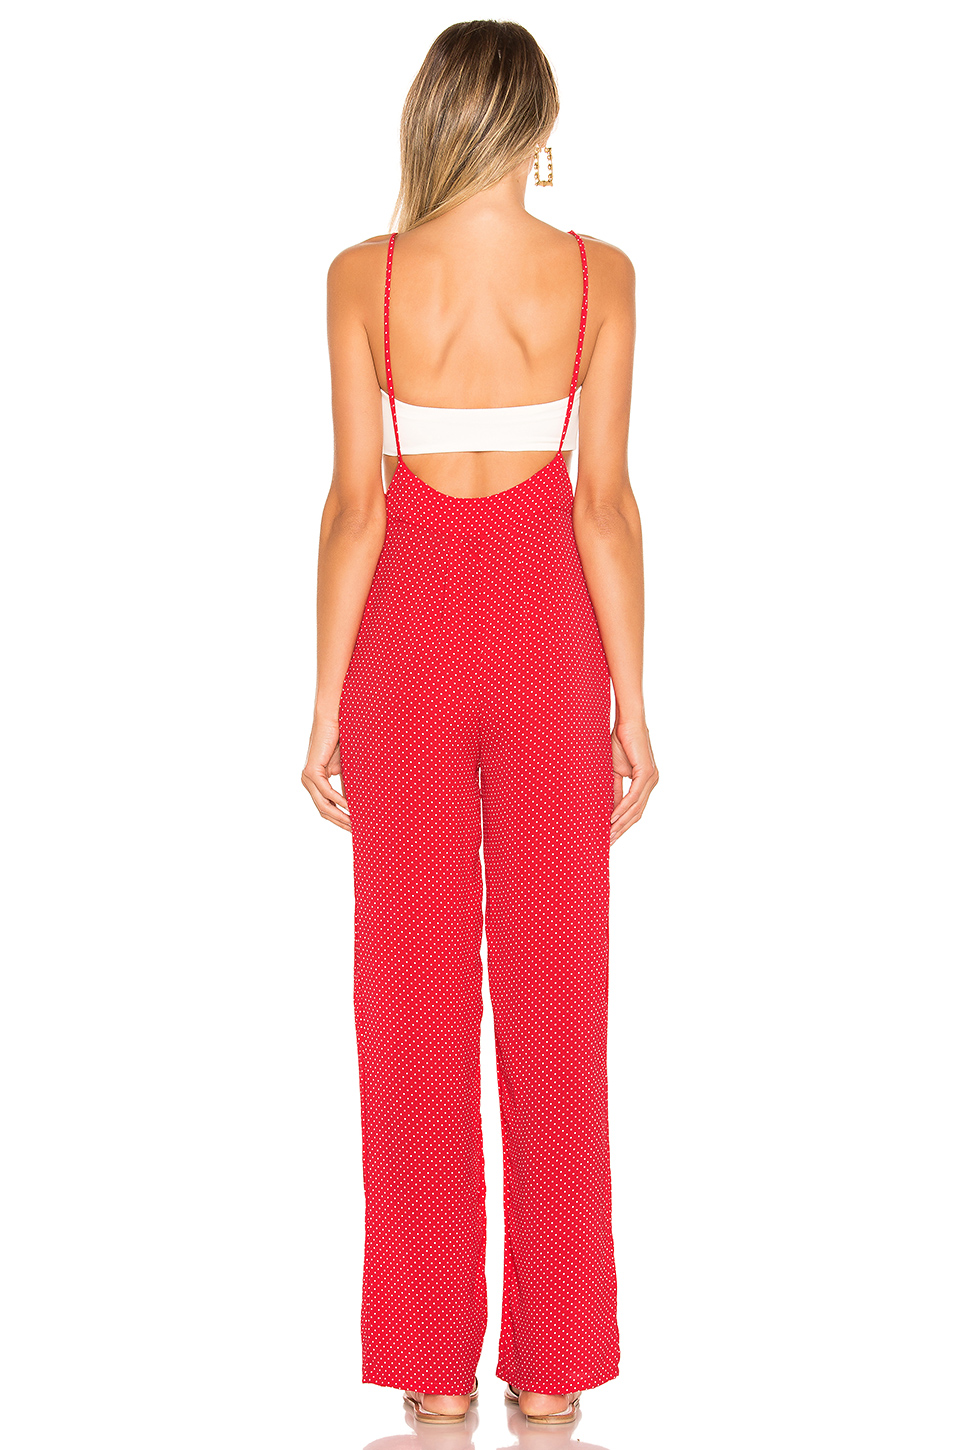 68951bd32eaa Buy Original ELLEJAY Jenni Jumpsuit at Indonesia